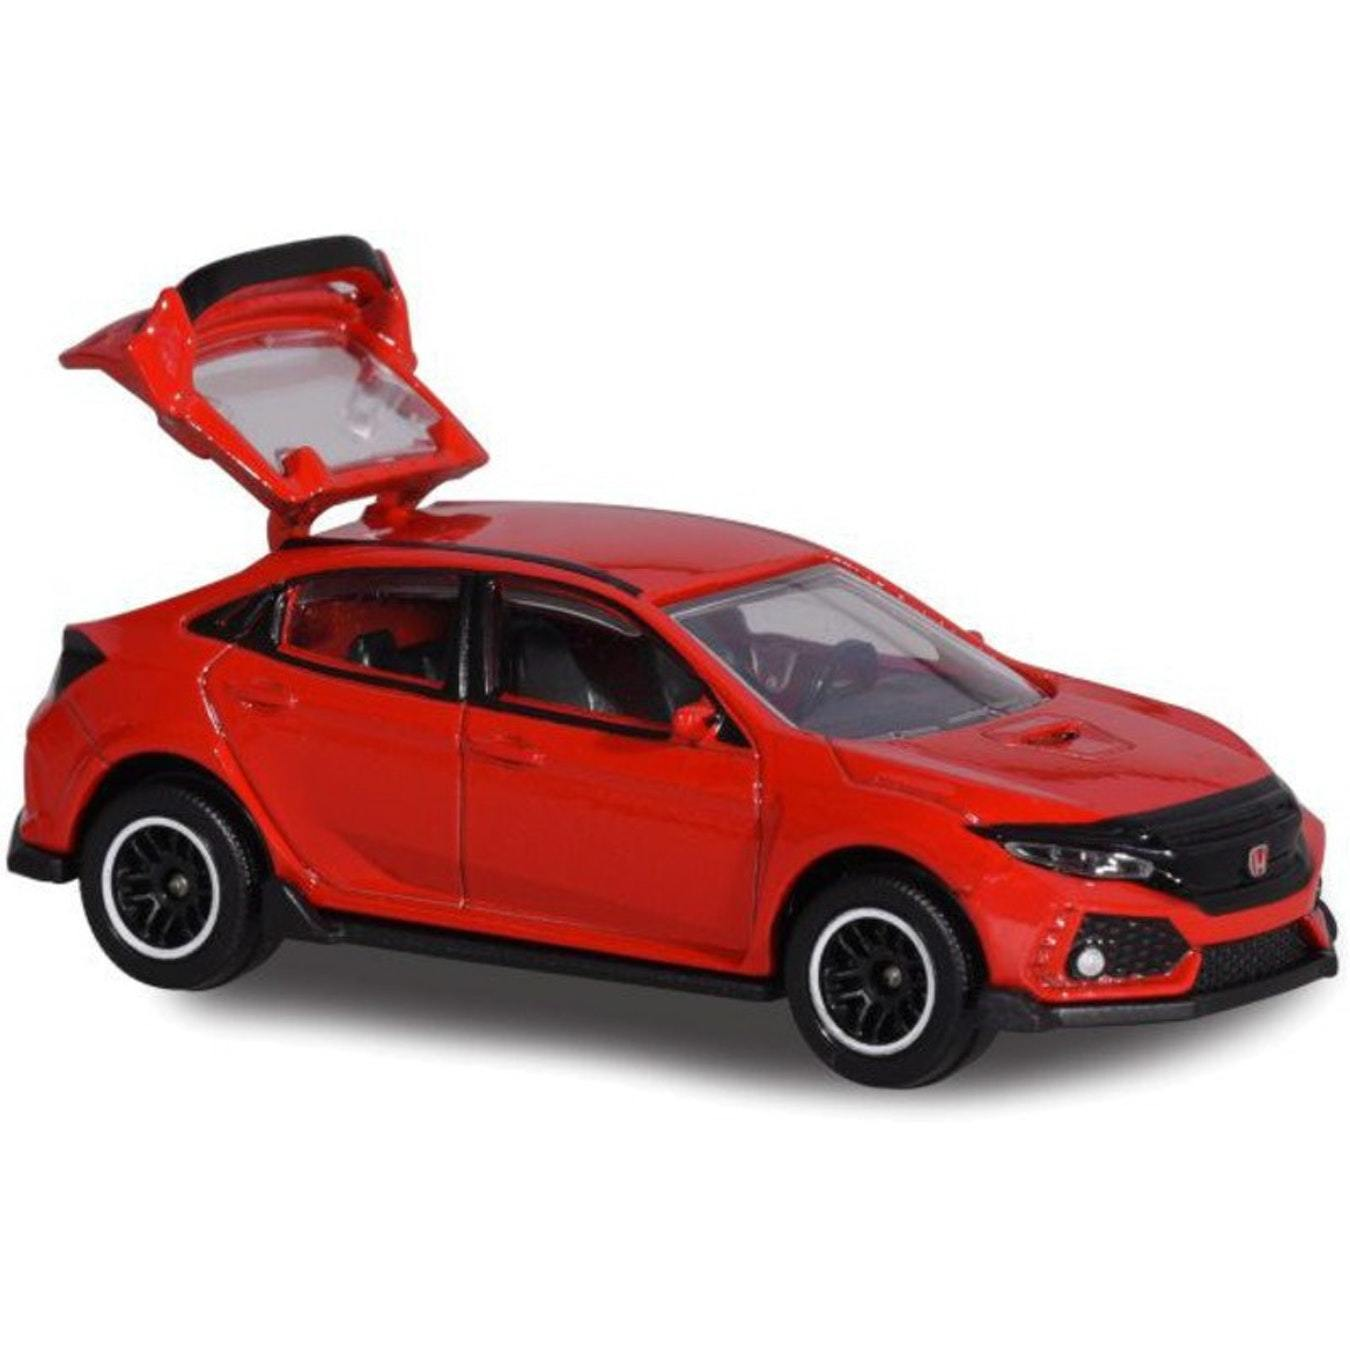 Premium Cars Honda Civic Type R by Majorette -Majorette - India - www.superherotoystore.com